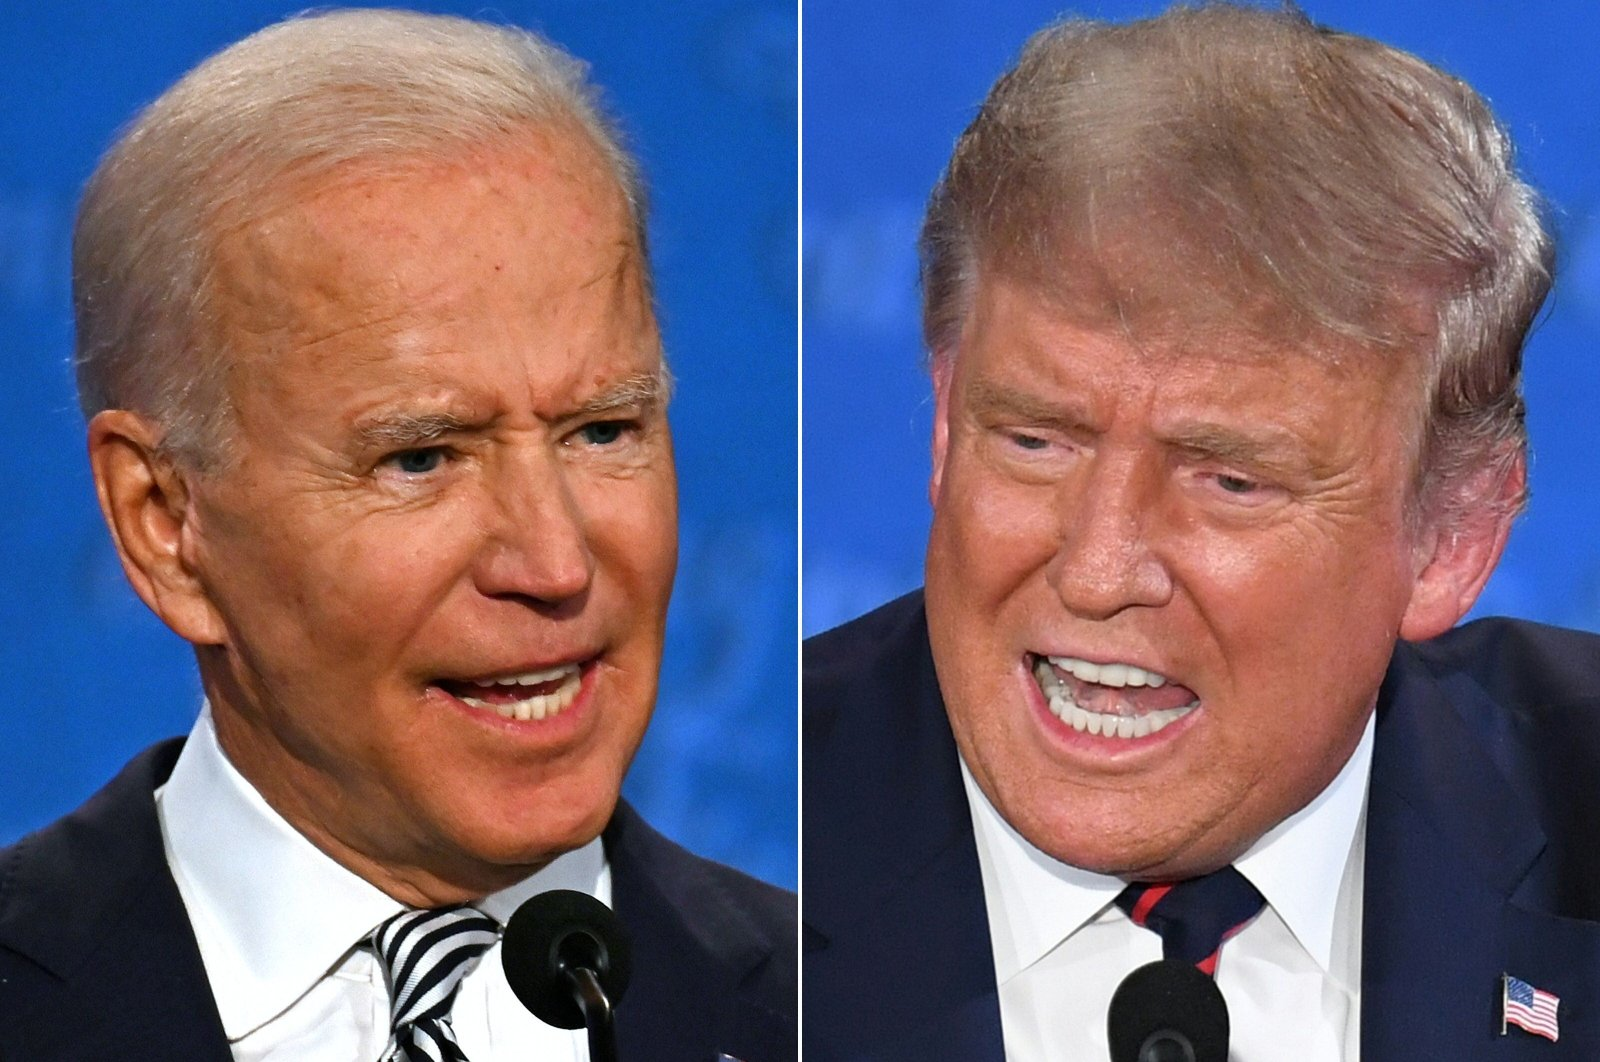 In this combination of pictures, Democratic Presidential candidate and former U.S. Vice President Joe Biden (L) and U.S. President Donald Trump speak during the first presidential debate at the Case Western Reserve University and Cleveland Clinic in Cleveland, Ohio, created on Sept. 29, 2020. (AFP Photo)